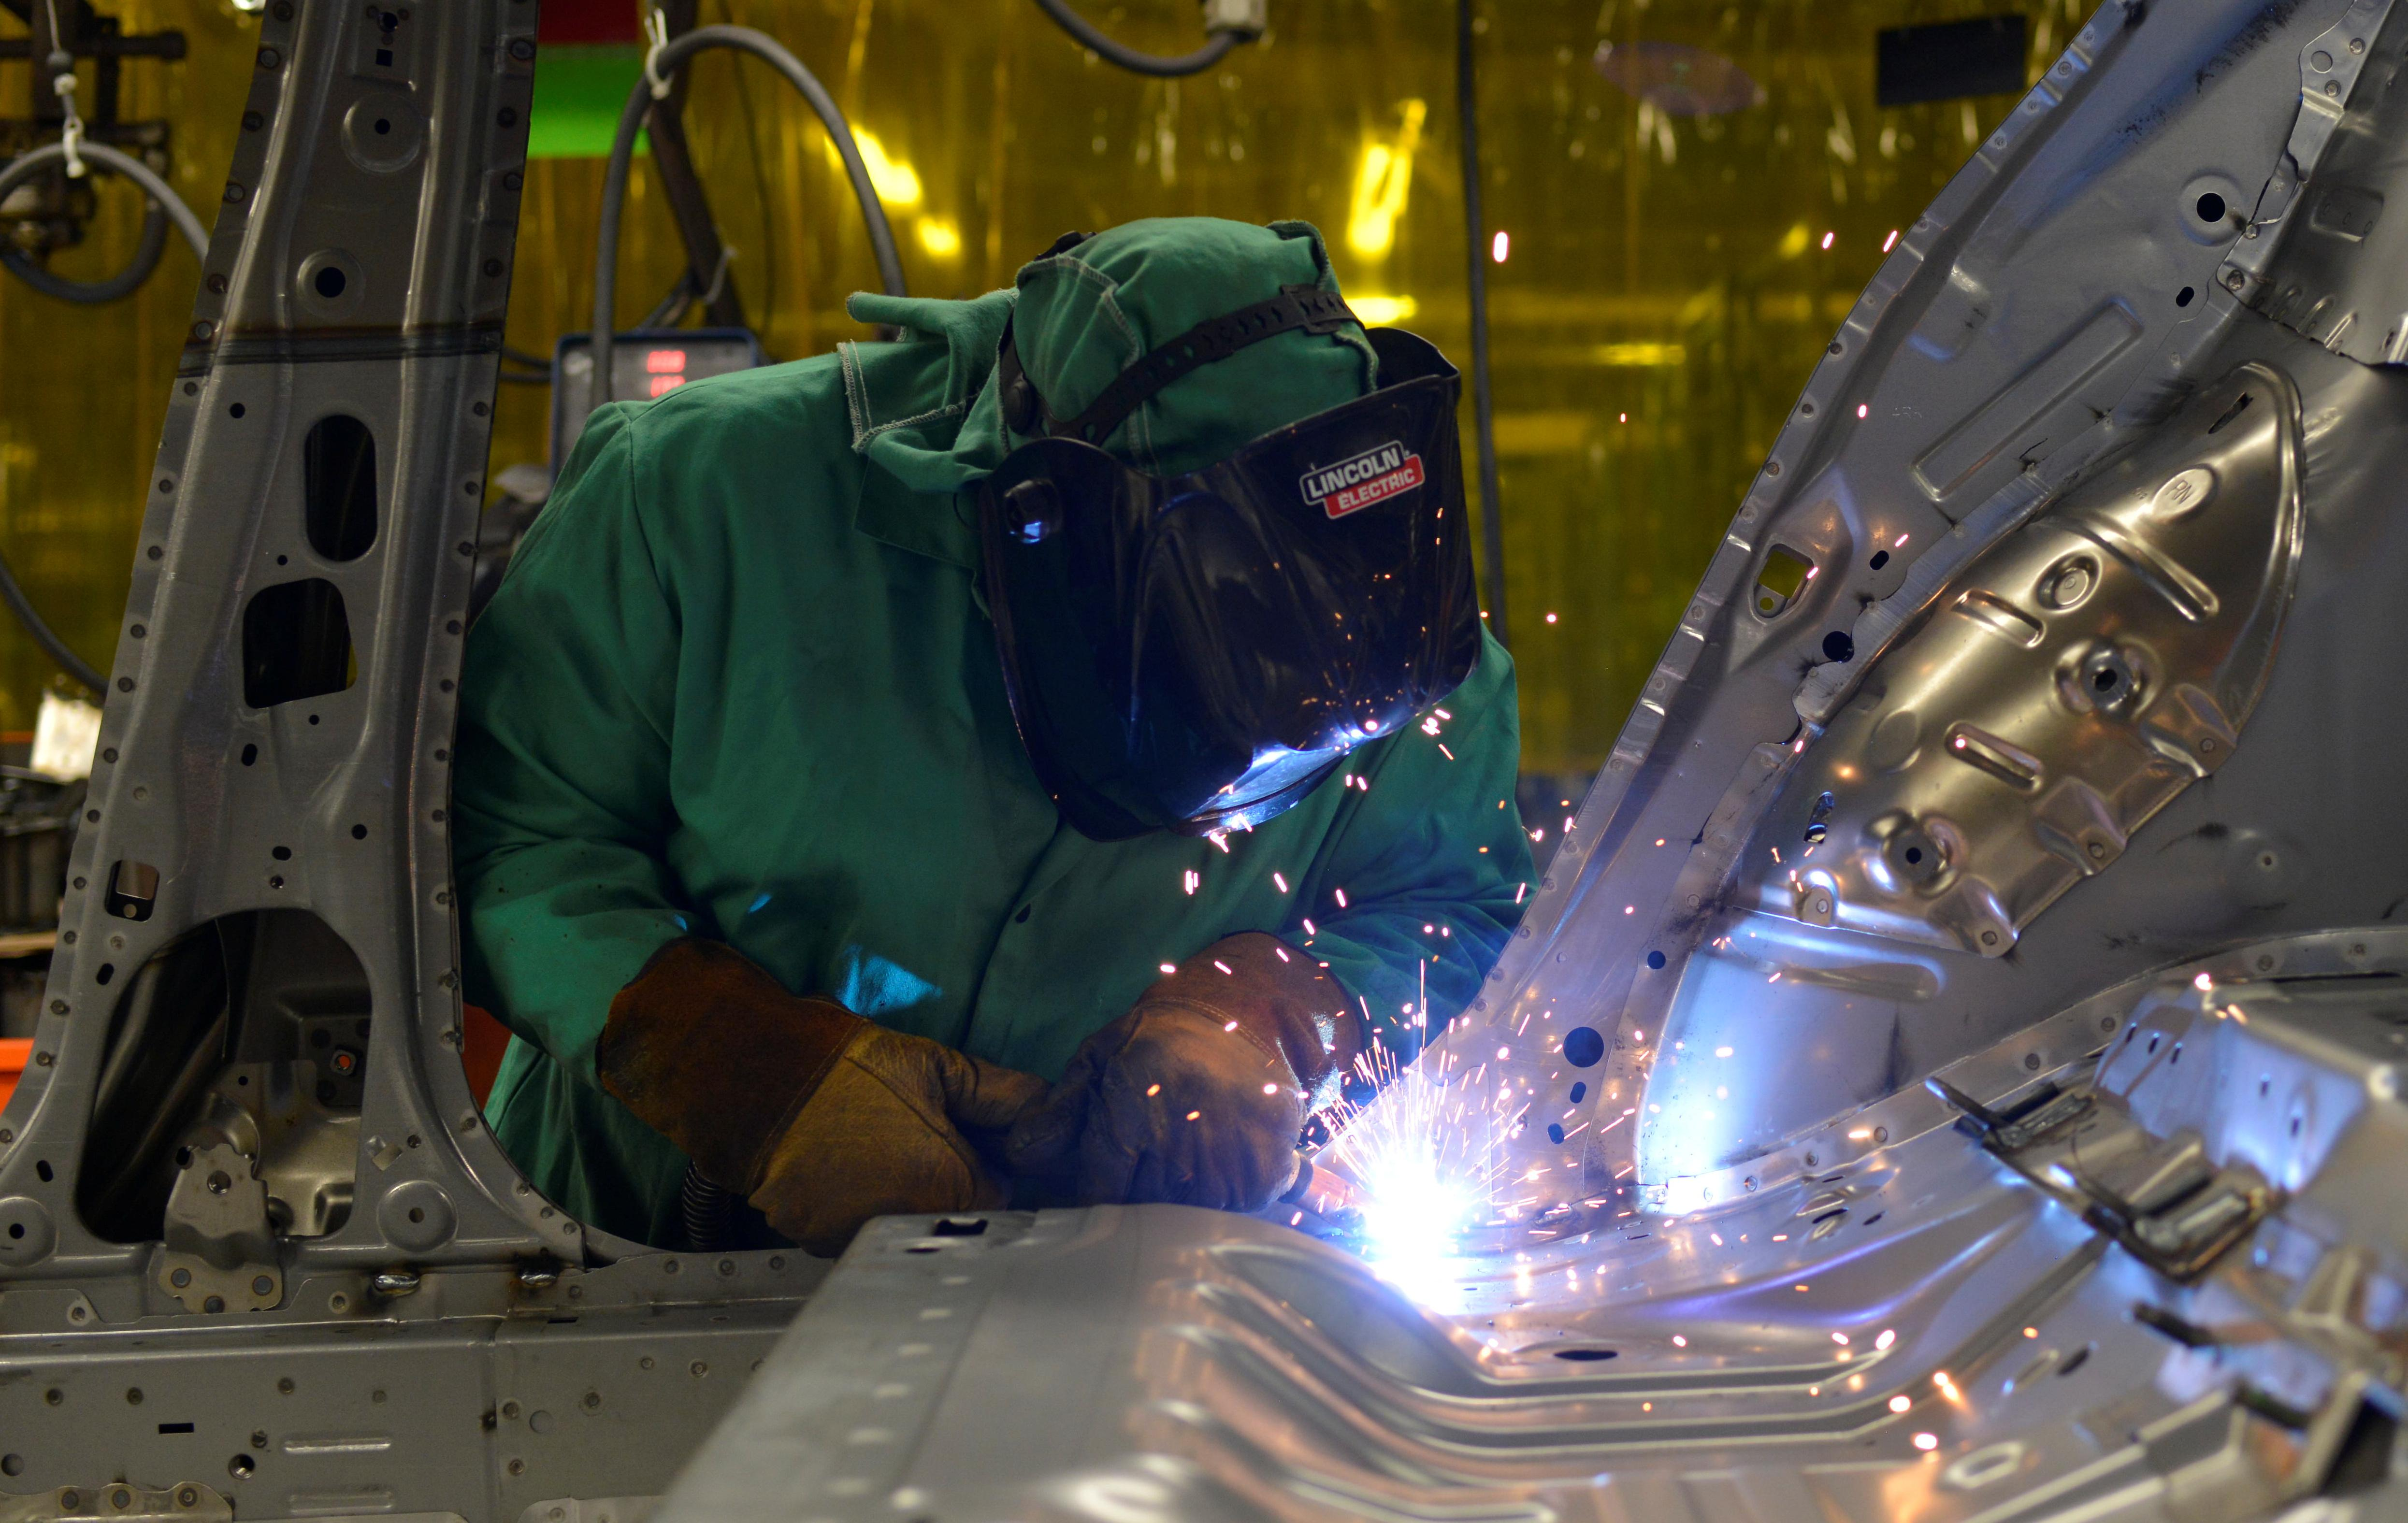 U.S. factories show signs of trouble; labor market still firm